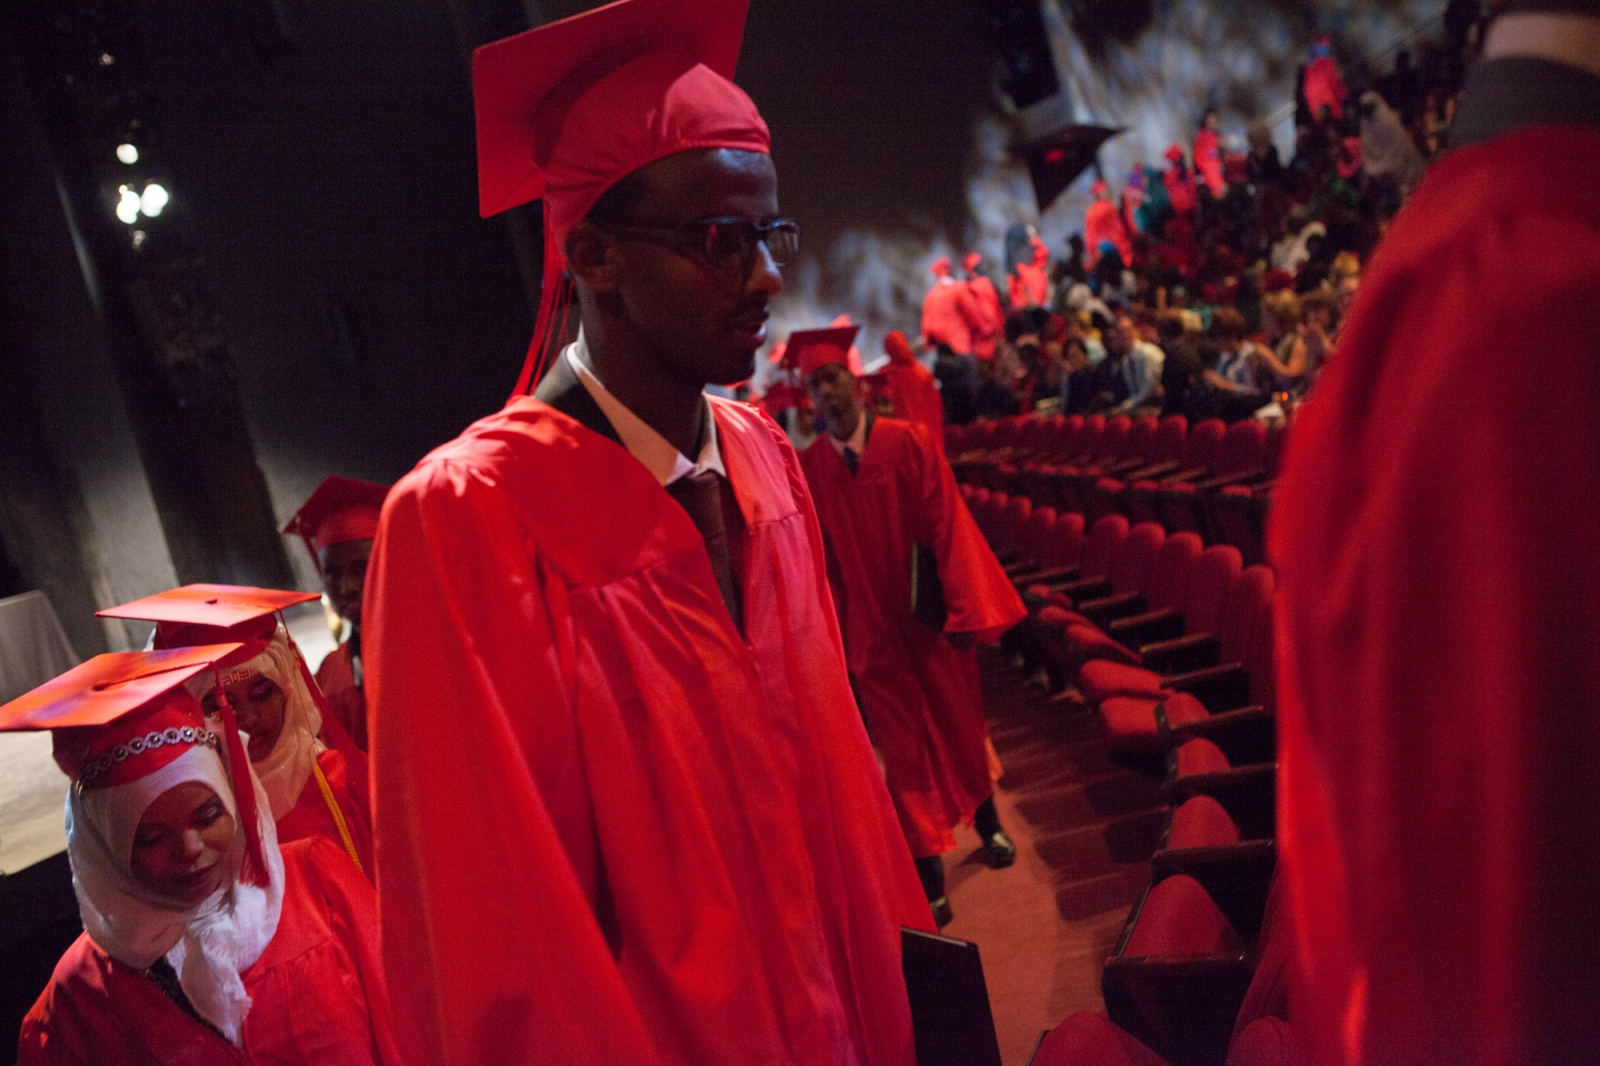 Graduating senior Mahamed Ahmed leaves at the end of the Lincoln International High School commencement ceremony. Lincoln is one of a number of charter schools in Minneapolis with a predominantly Somali student body.